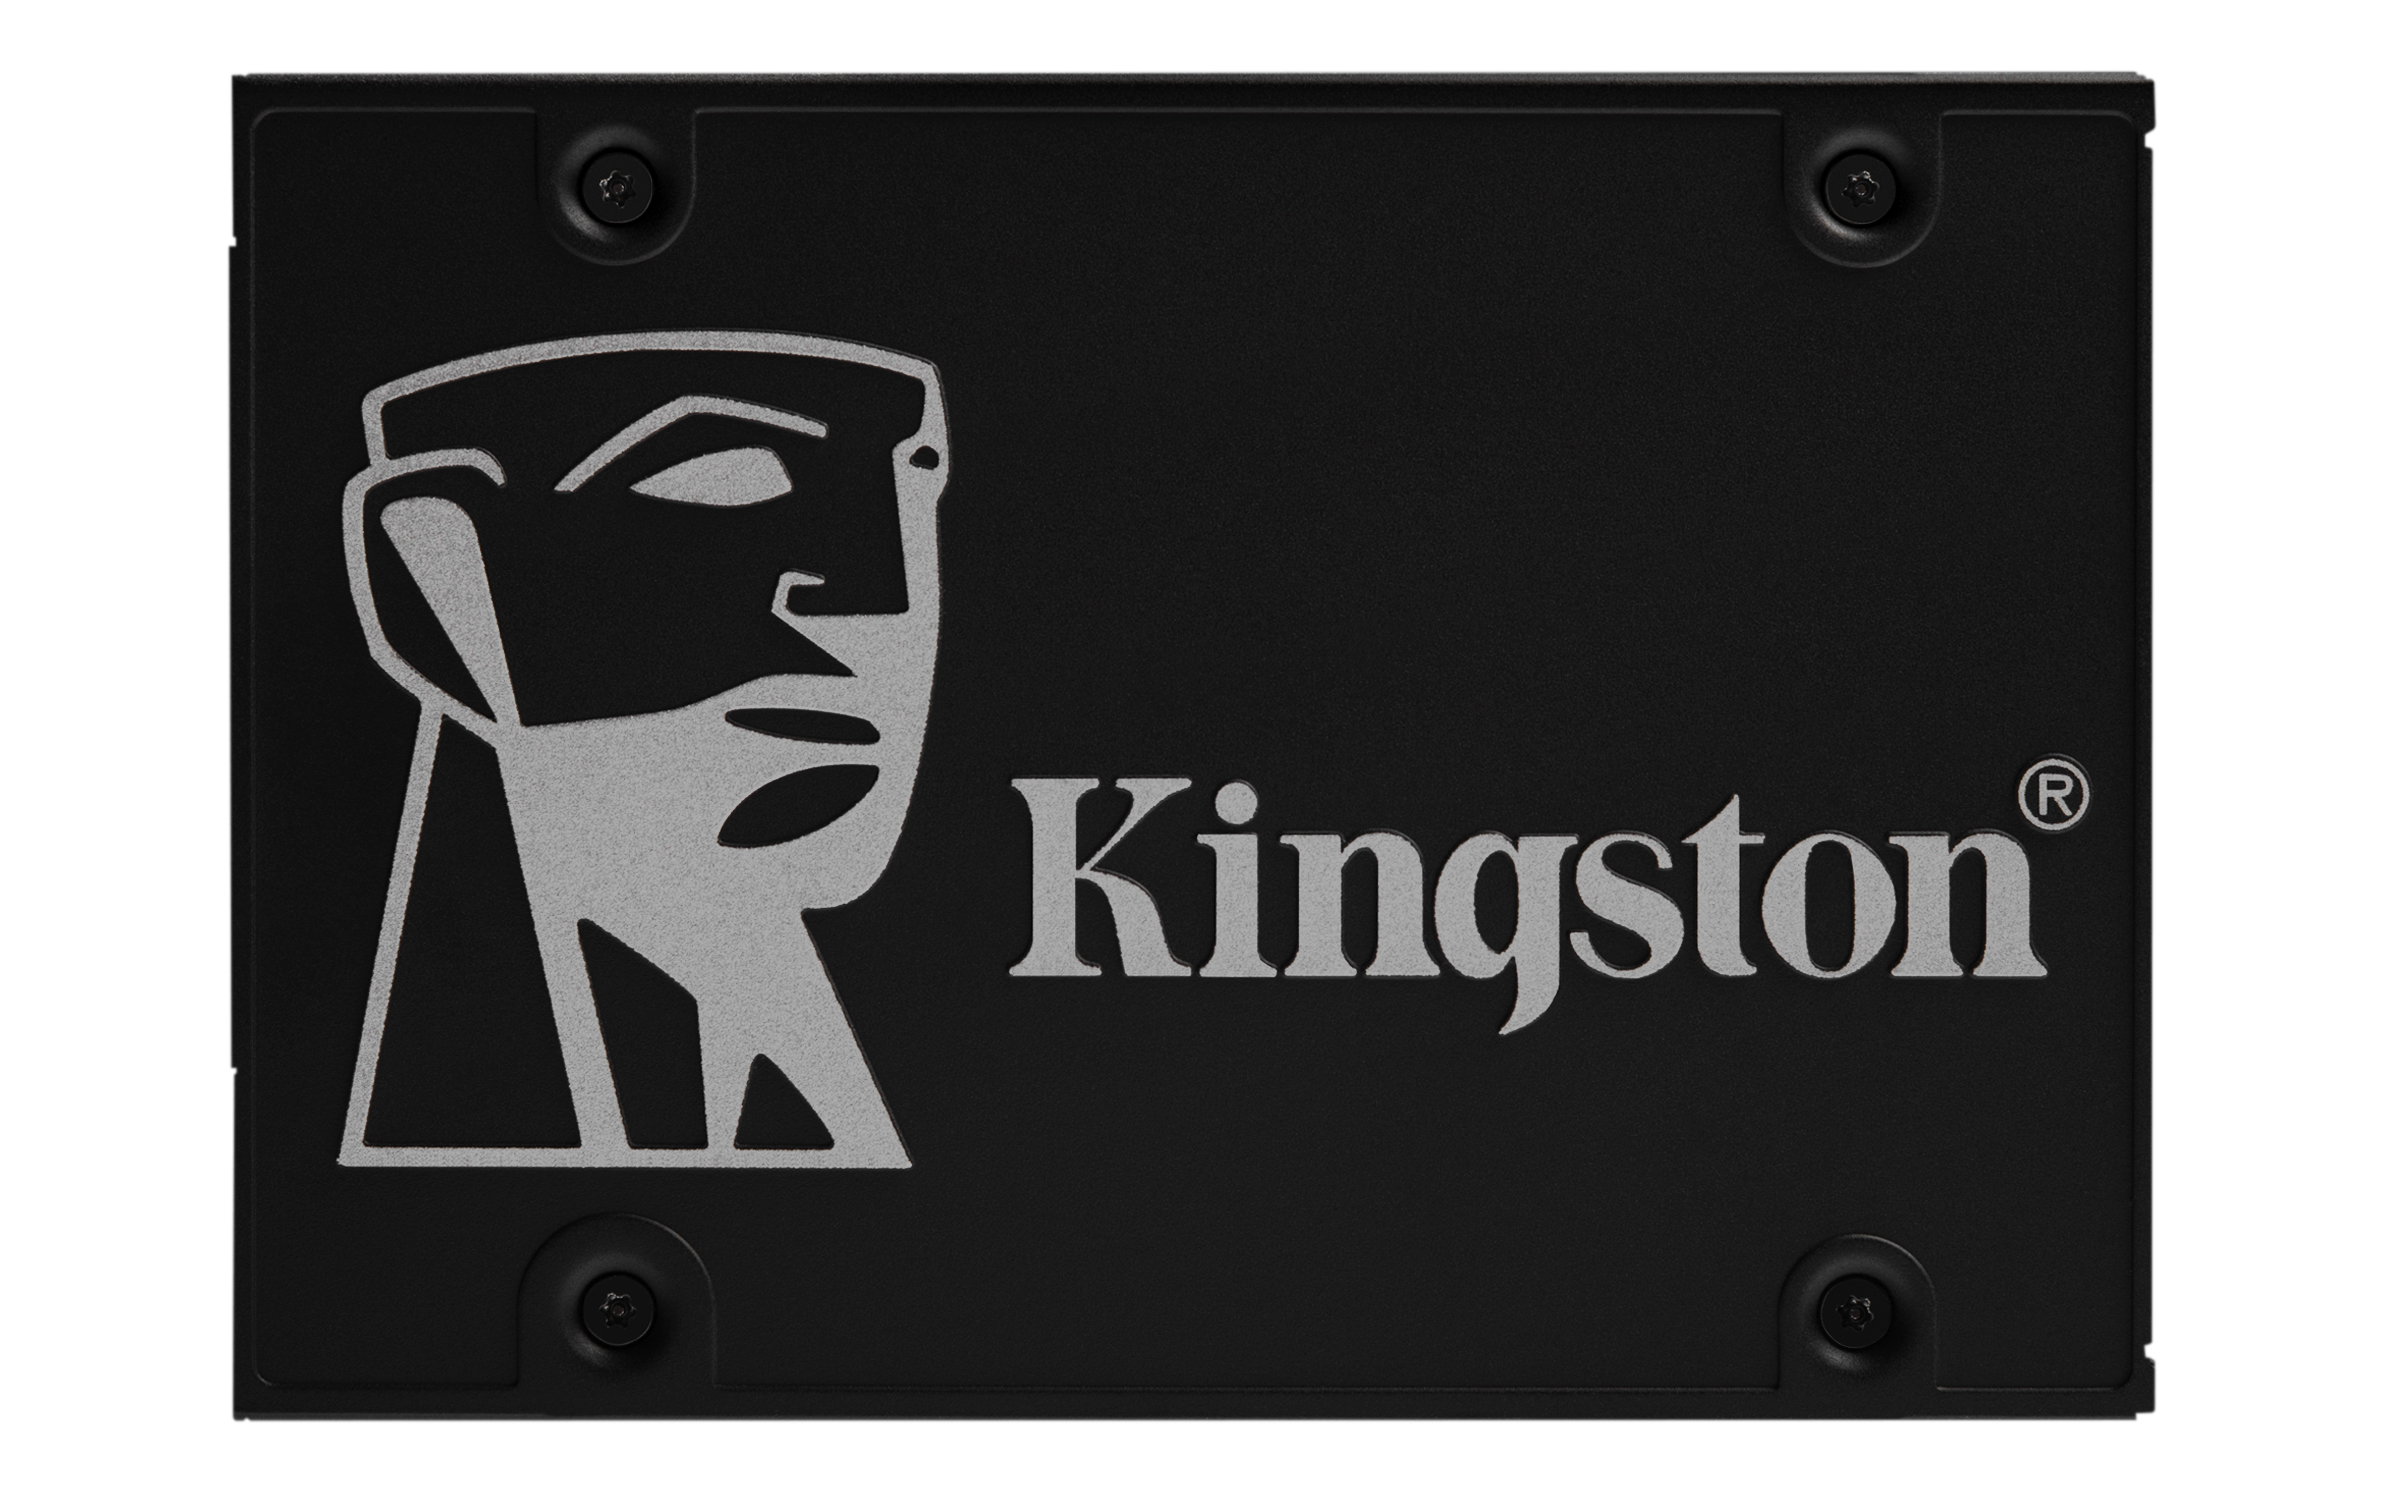 Kingston - Ssd                   2048g Kc600 Sata3 2.5in Ssd         Only Drive                          Skc600/2048g